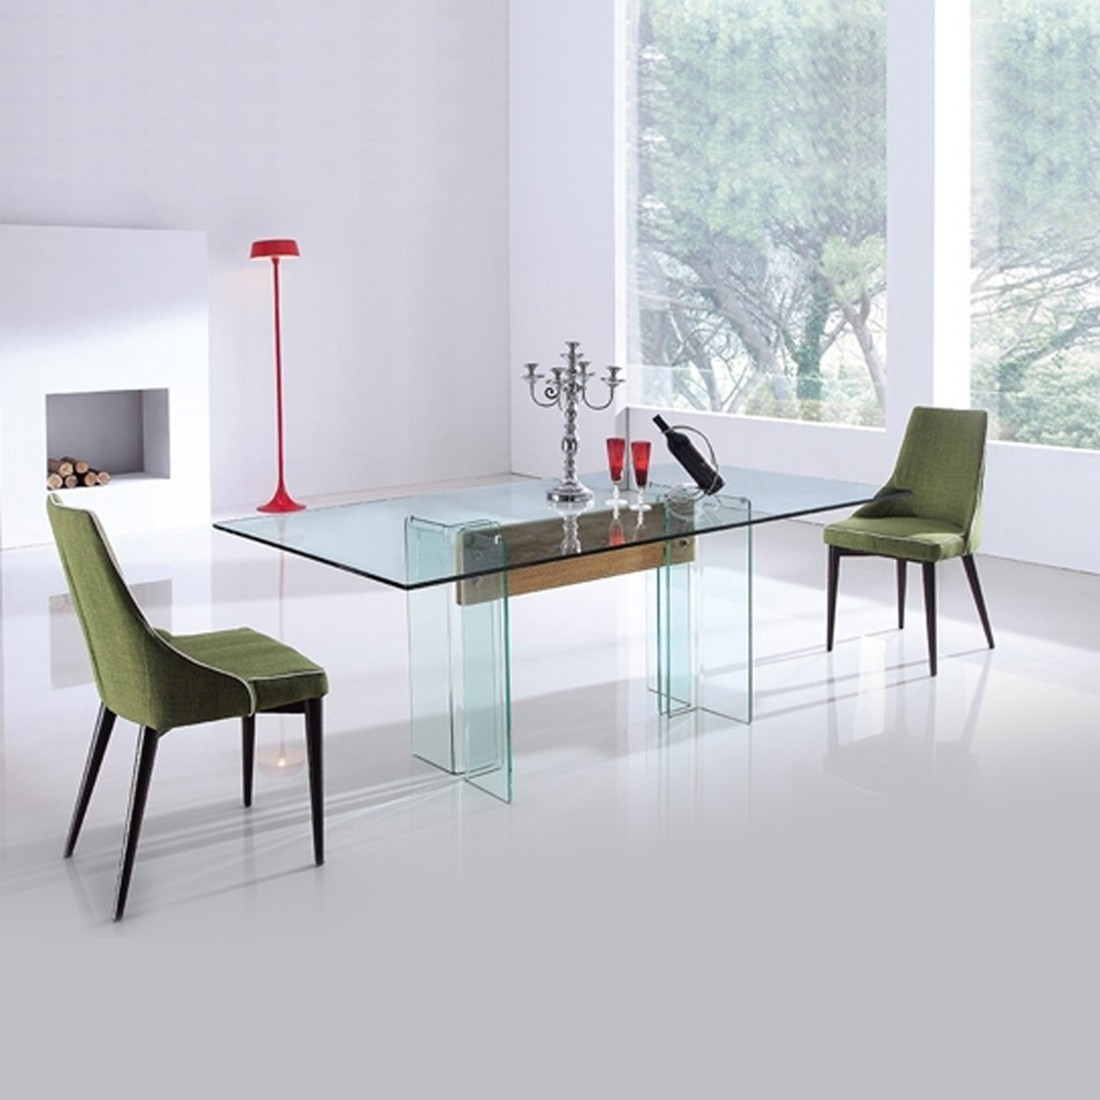 table manger en verre et bois design glasswood. Black Bedroom Furniture Sets. Home Design Ideas